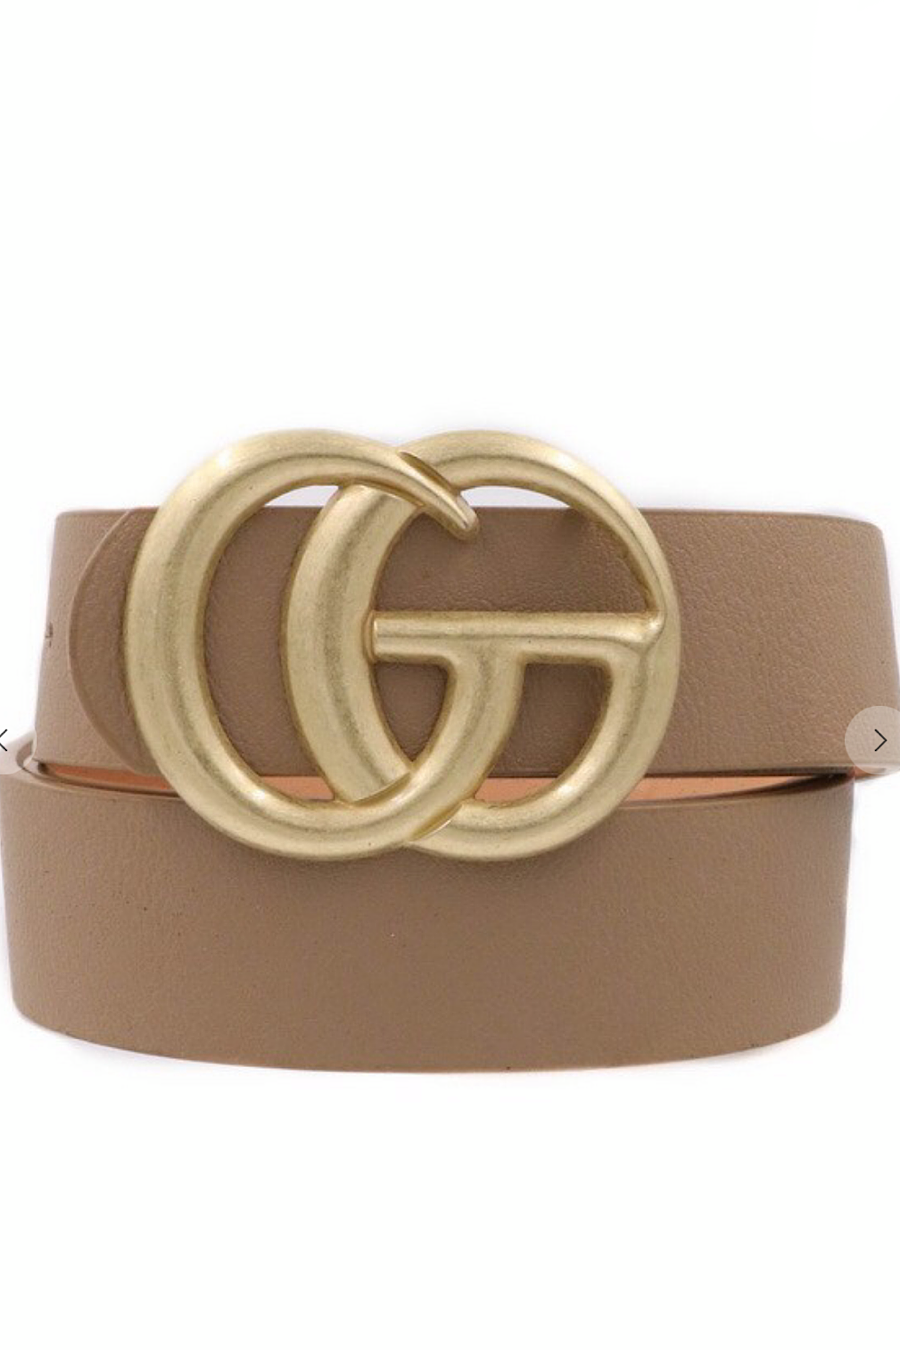 Double Metal Buckle Belt in Several Colors